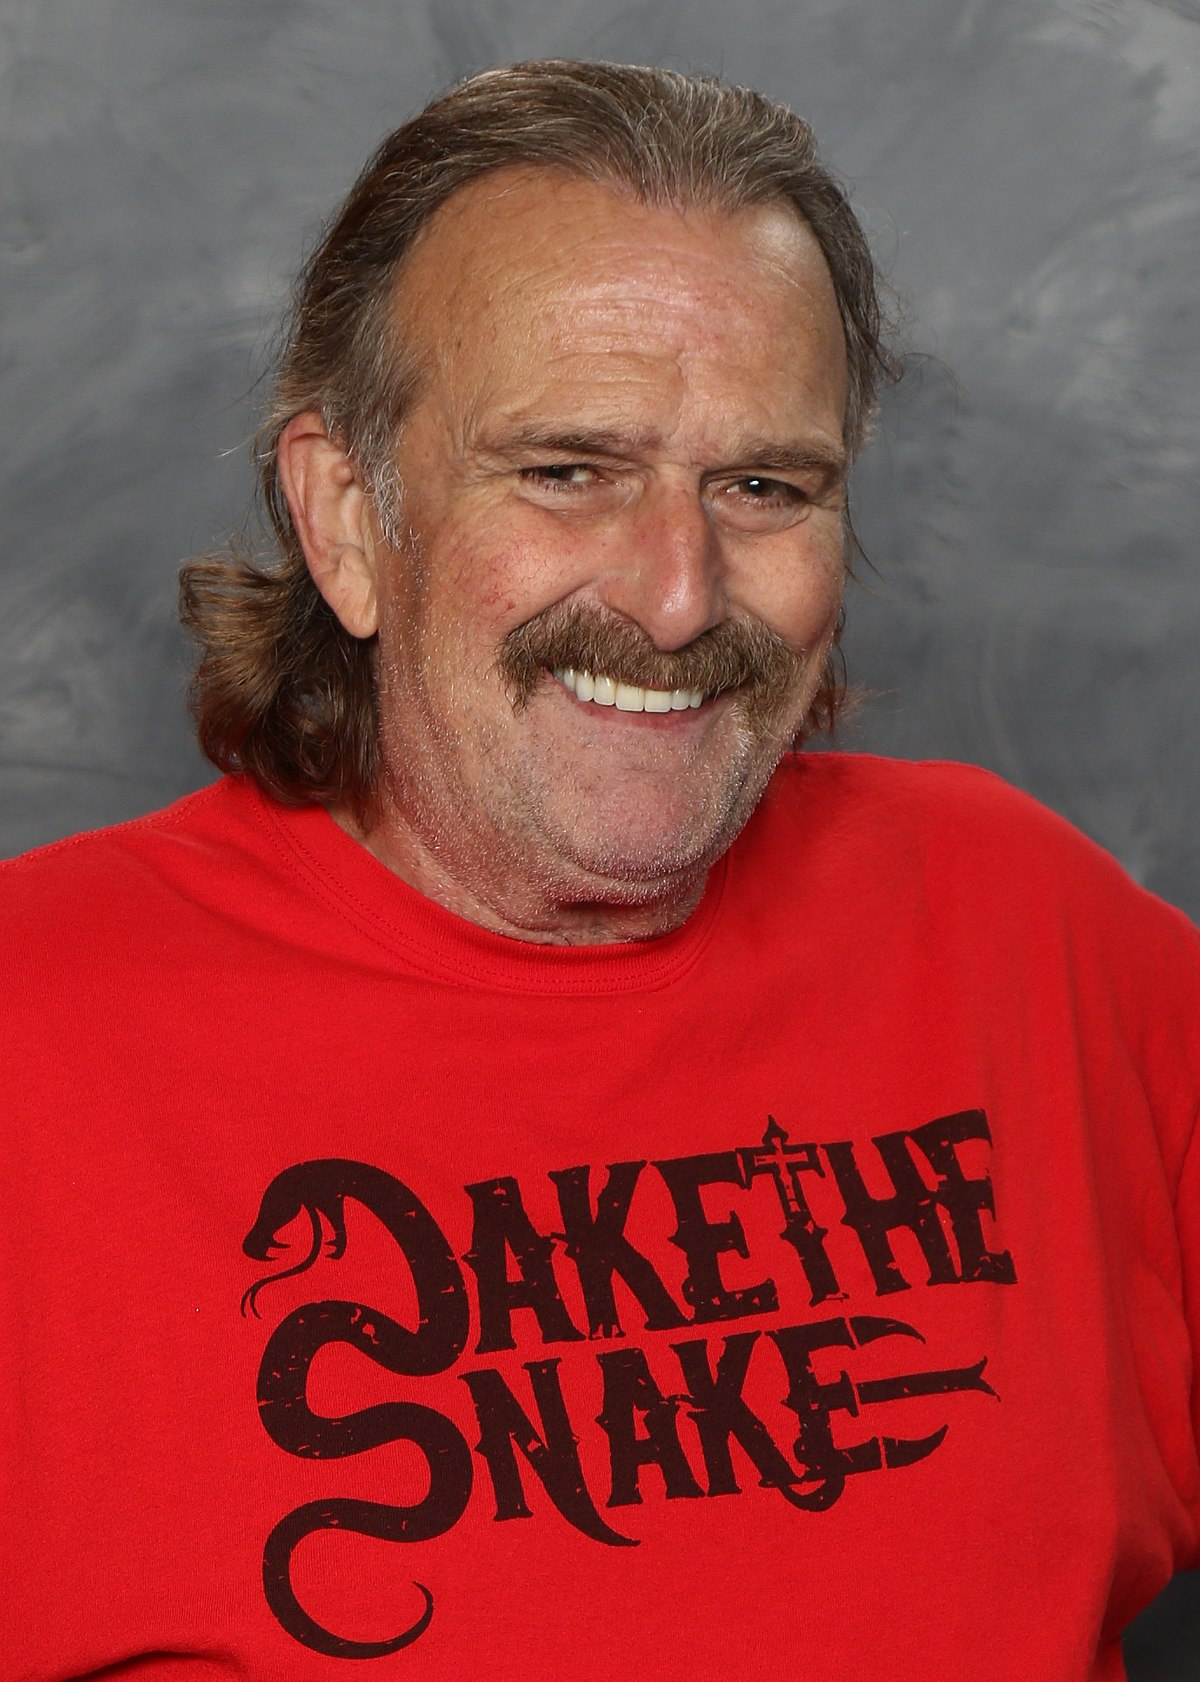 Jake Roberts Wikipedia June 11, 2020 some facts about mr. jake roberts wikipedia